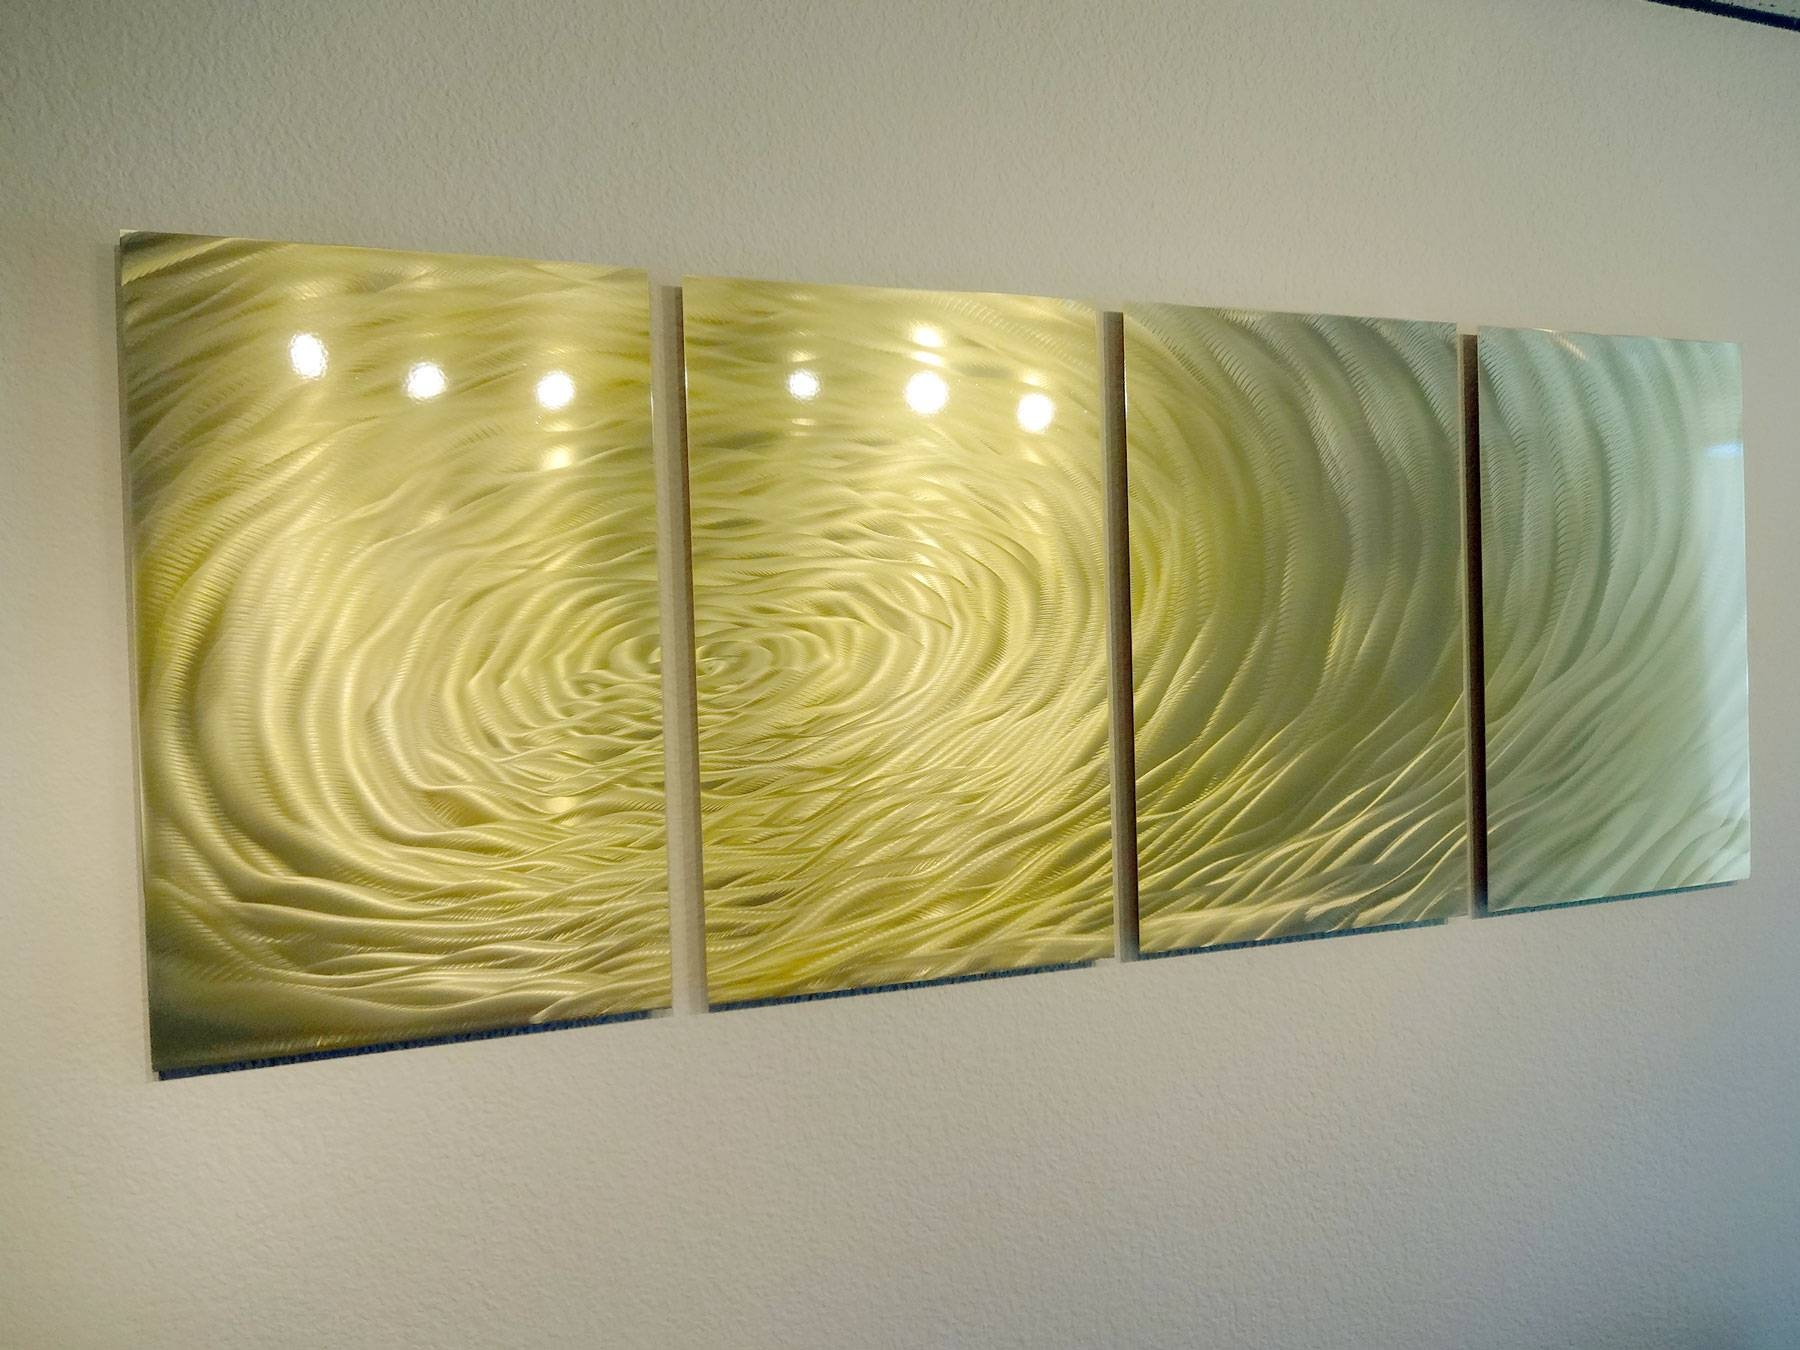 Gold Ripple Metal Wall Art Abstract Contemporary Modern Decor Intended For Latest Contemporary Metal Wall Art Decor (View 13 of 20)